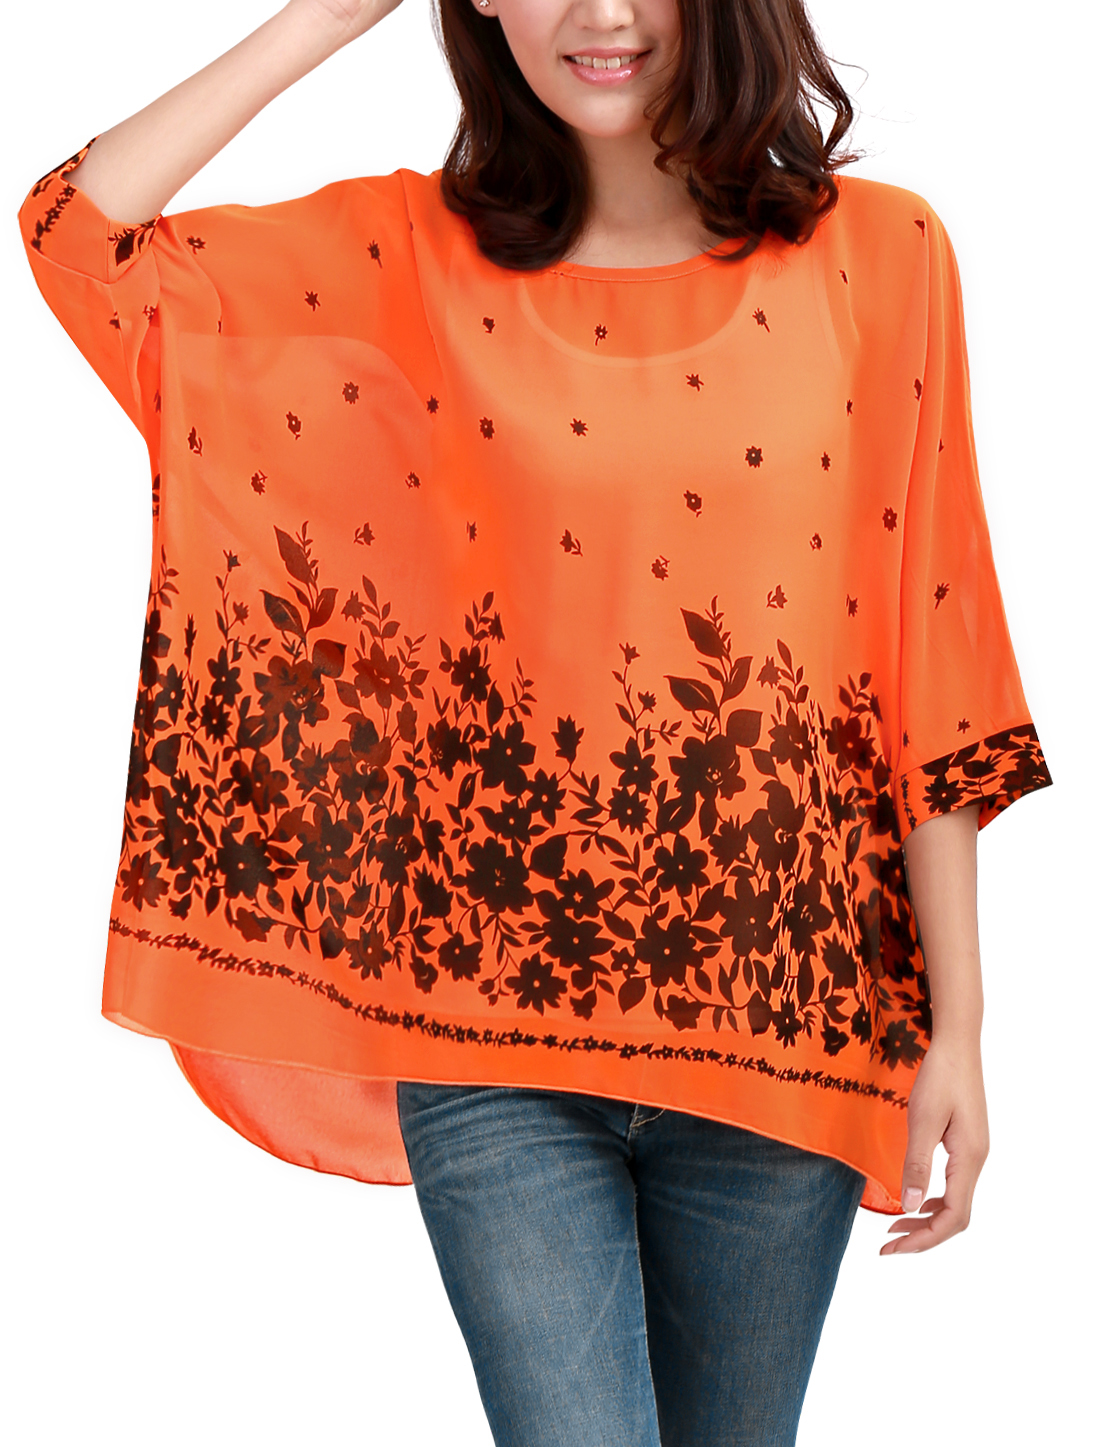 Lady Orange Batwing Sleeve Round Neck Flower Design Semi Sheer Top M